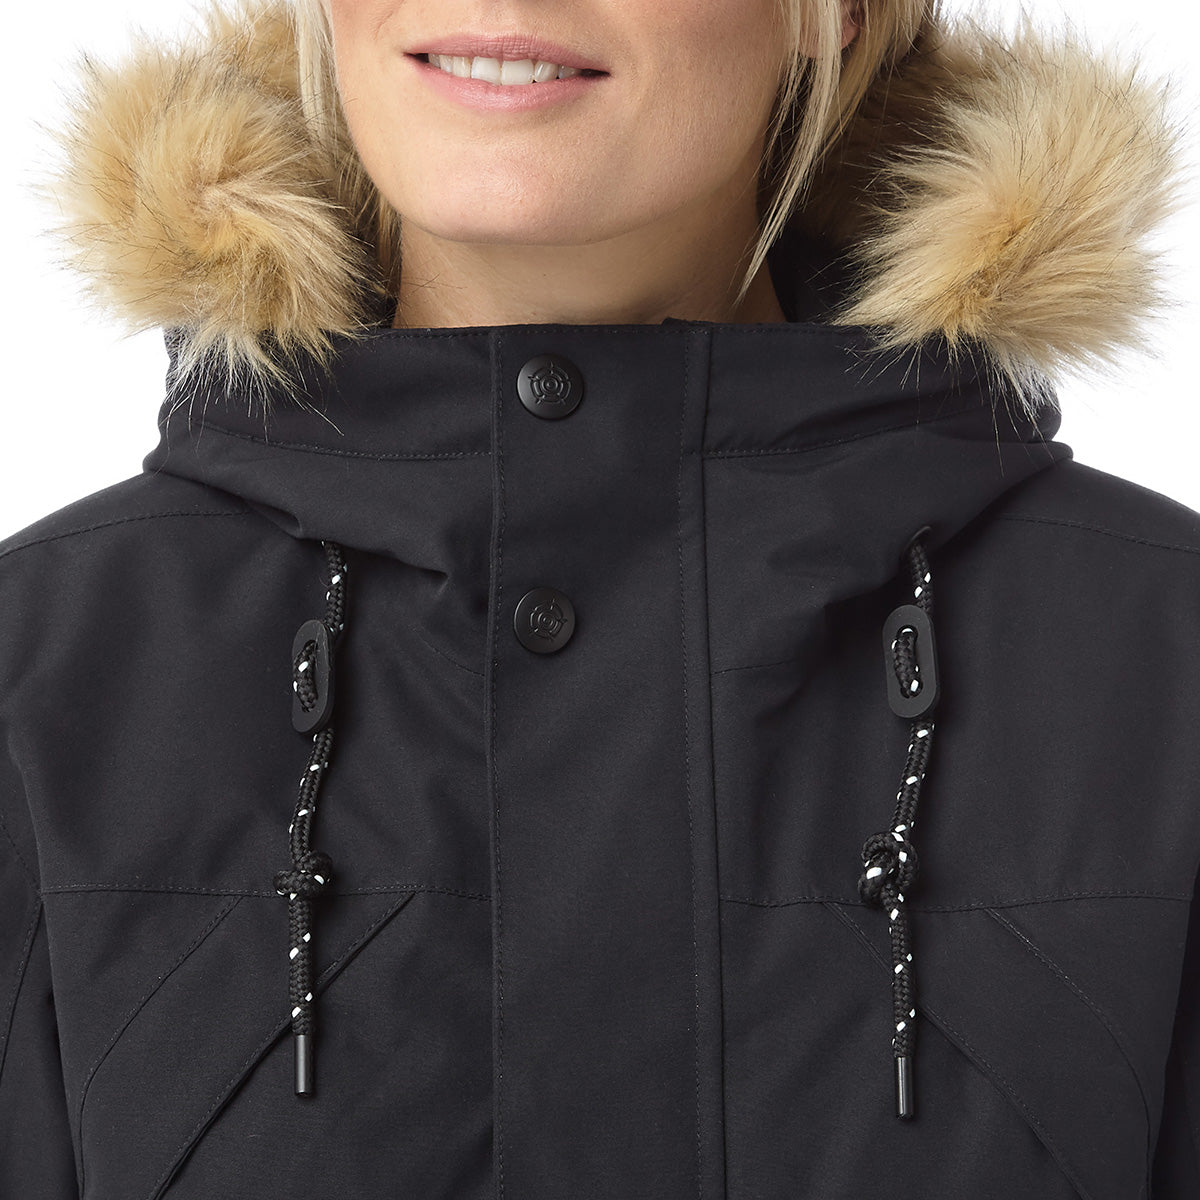 Premium Womens Waterproof Down Filled Parka - Black image 4